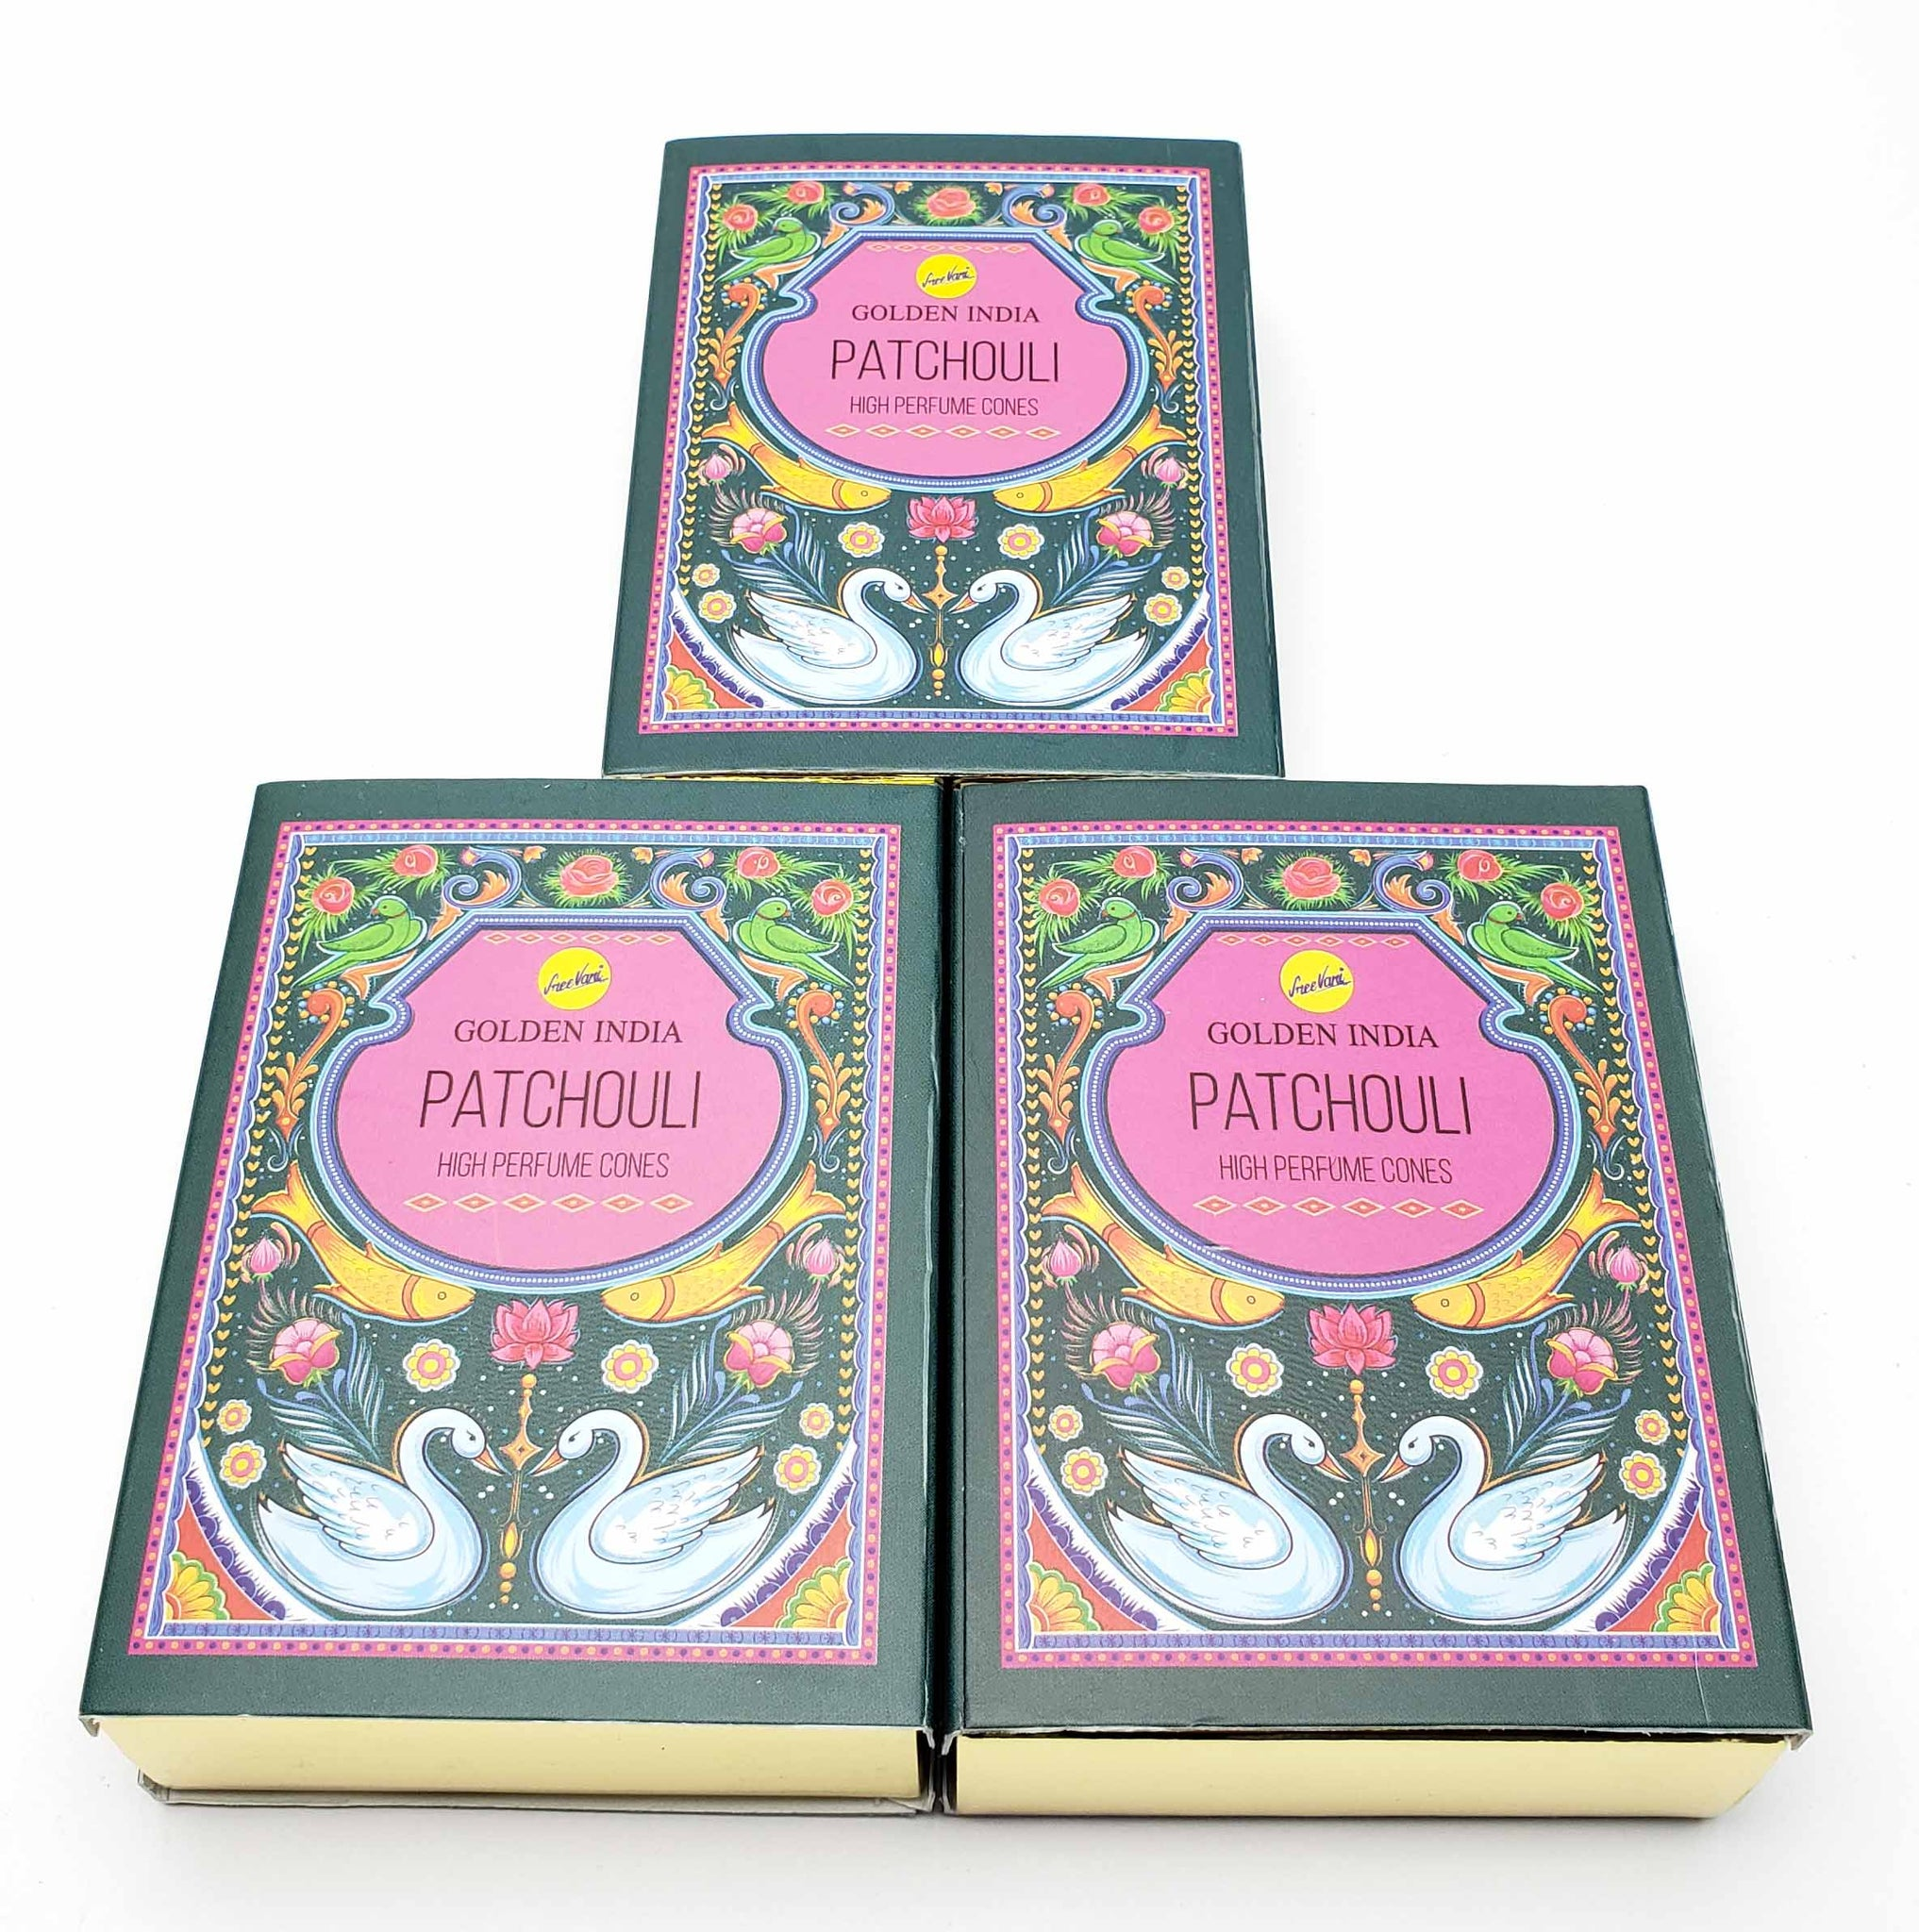 Golden India Patchouli Incense Cone